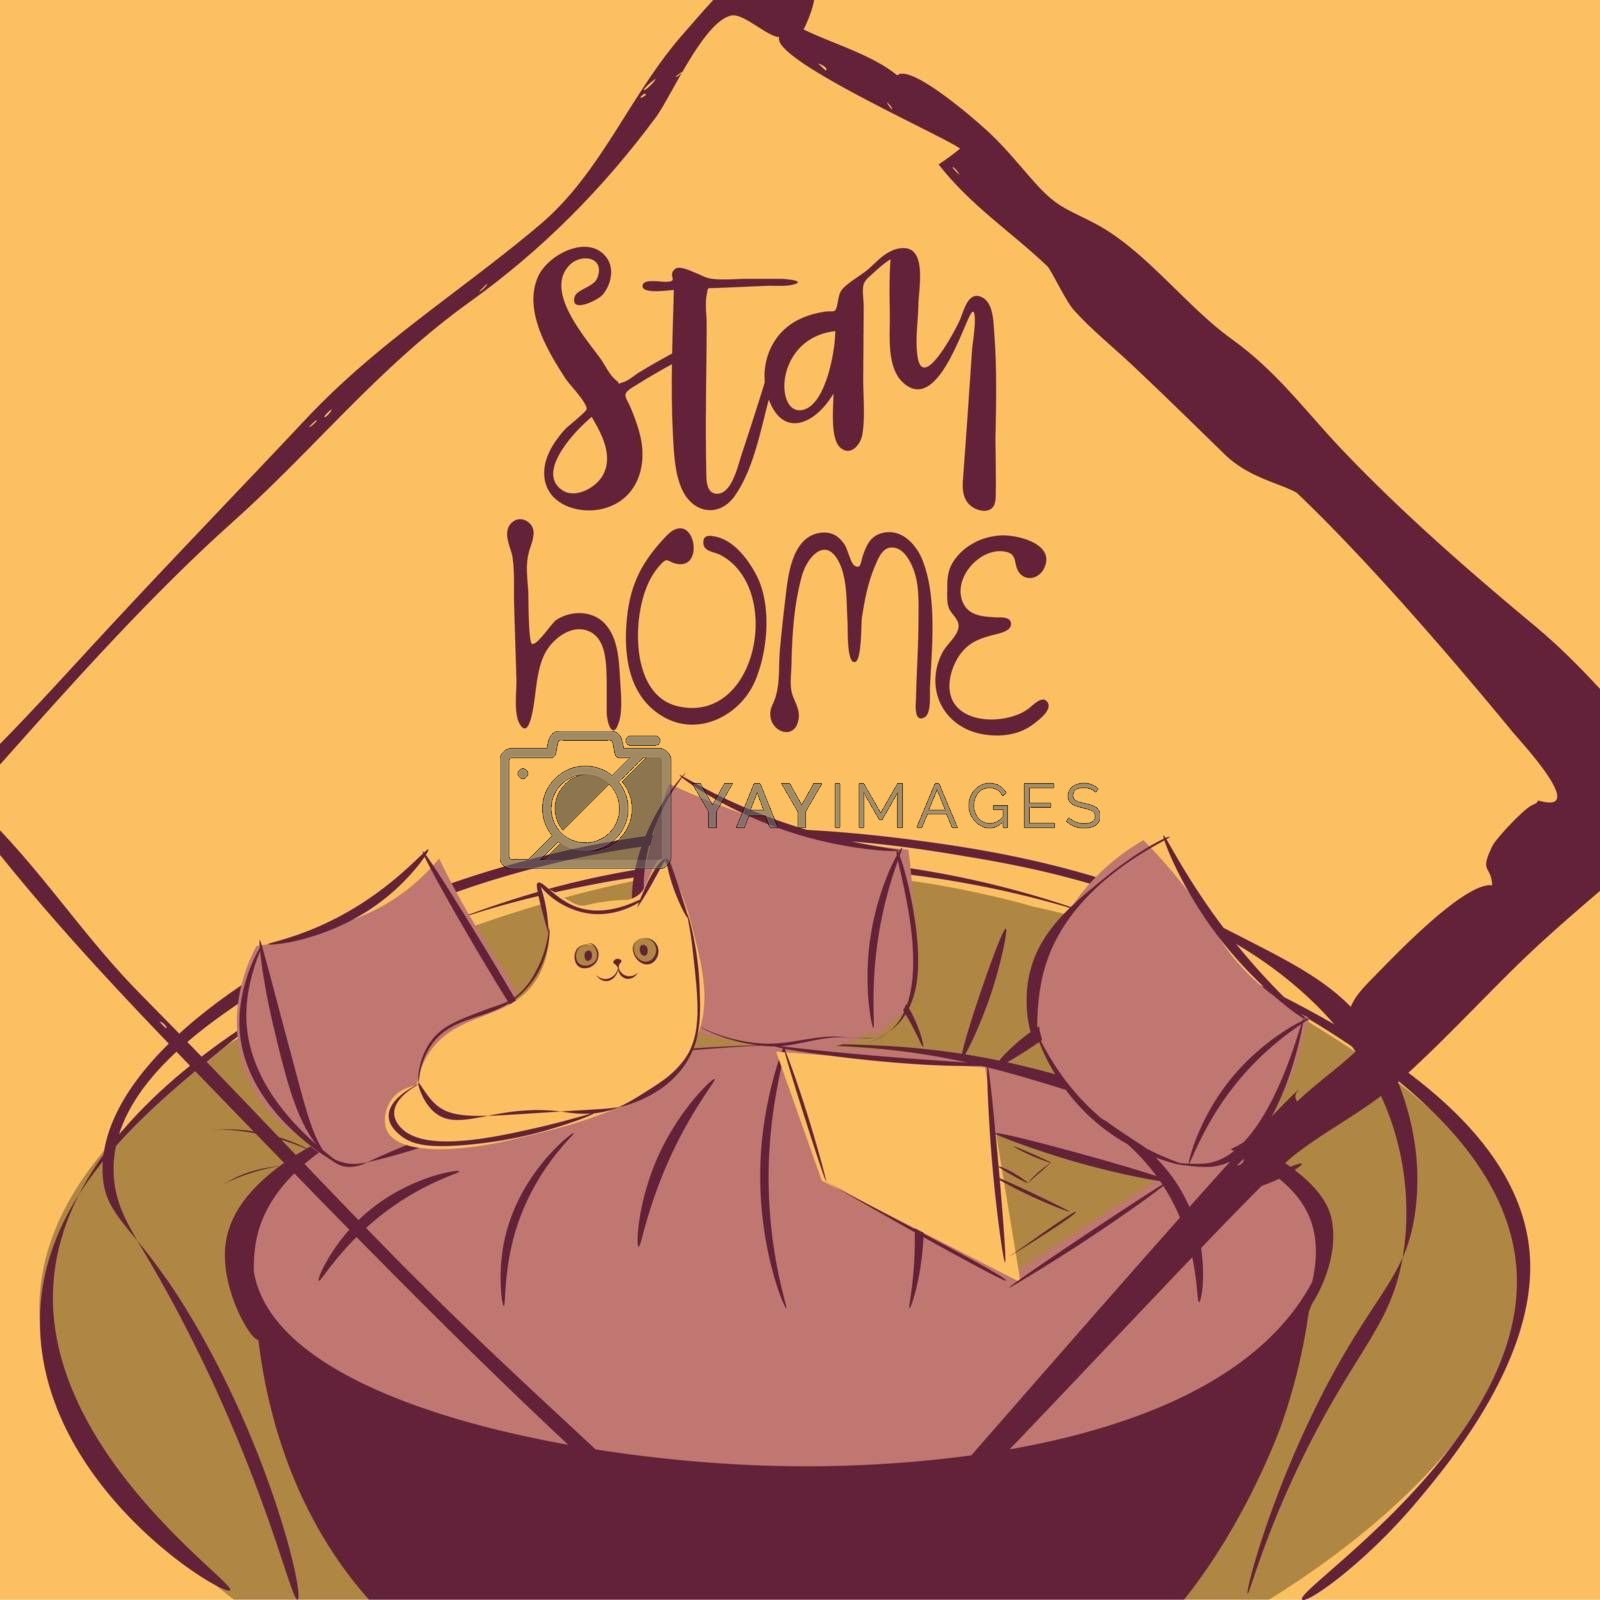 Cute and cozy illustration with drawn couch, cat and notebook, text 'stay home' in purple and orange colors